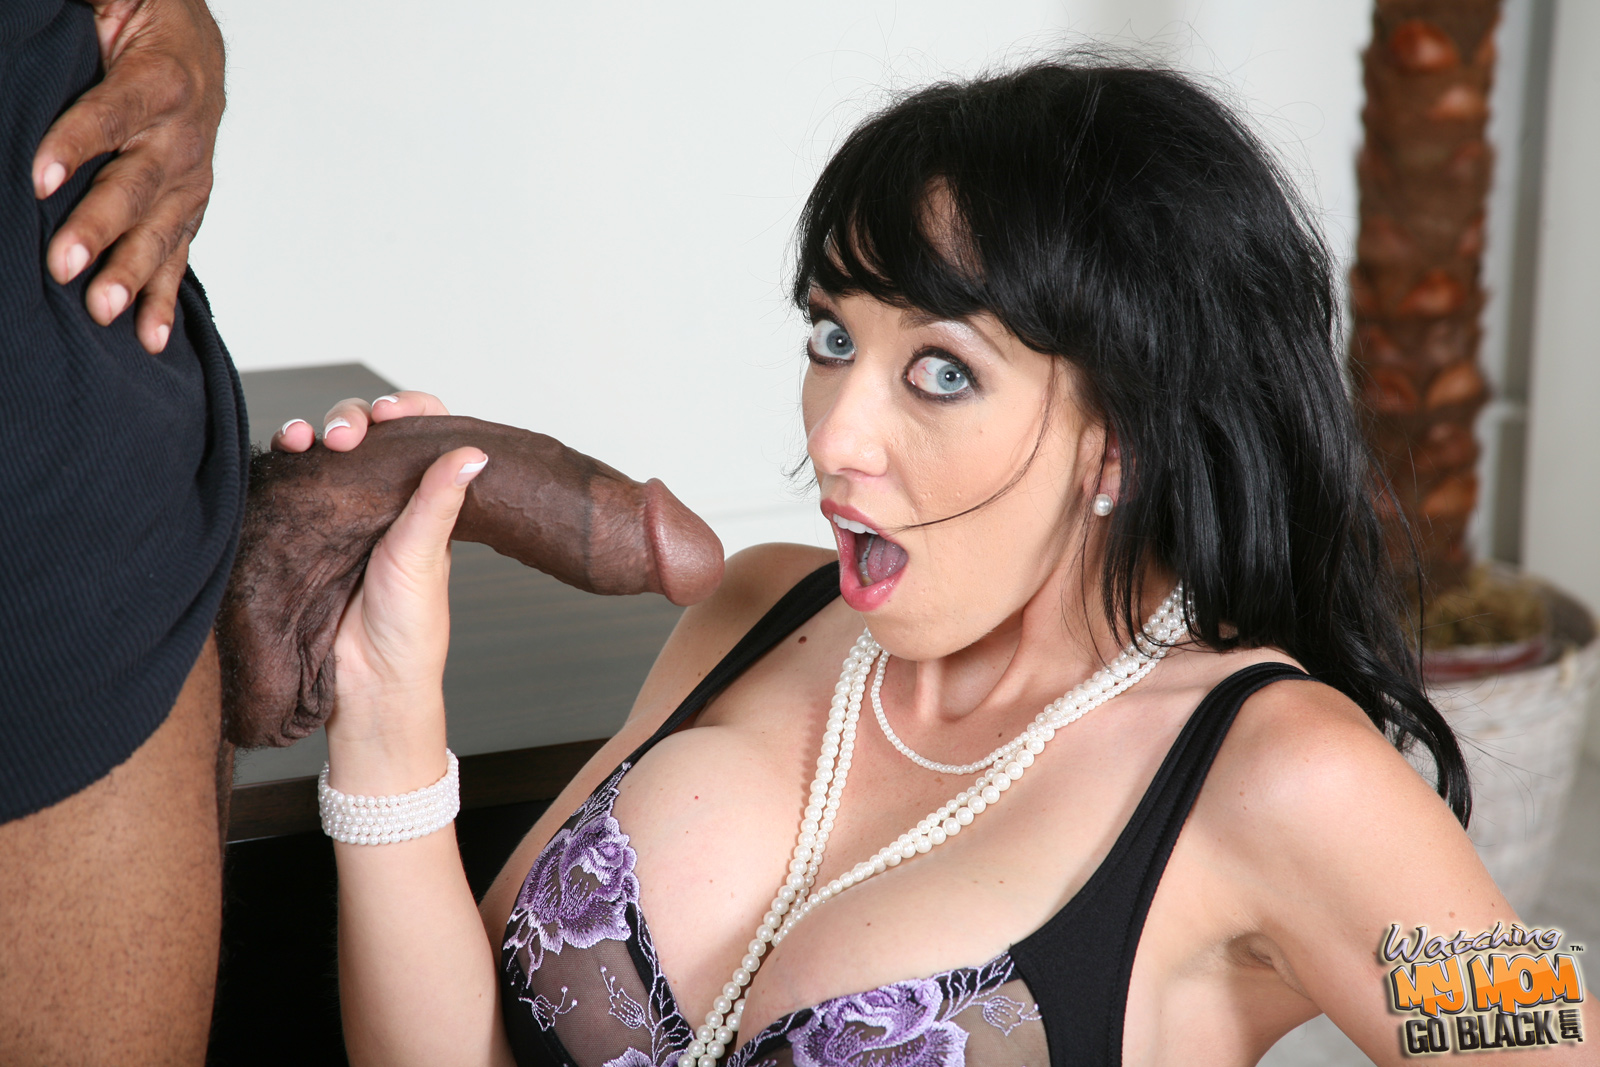 My Friends Hot Mommy Porn Movies hot mother sara jay go black - sara jay my friends hot mom 3